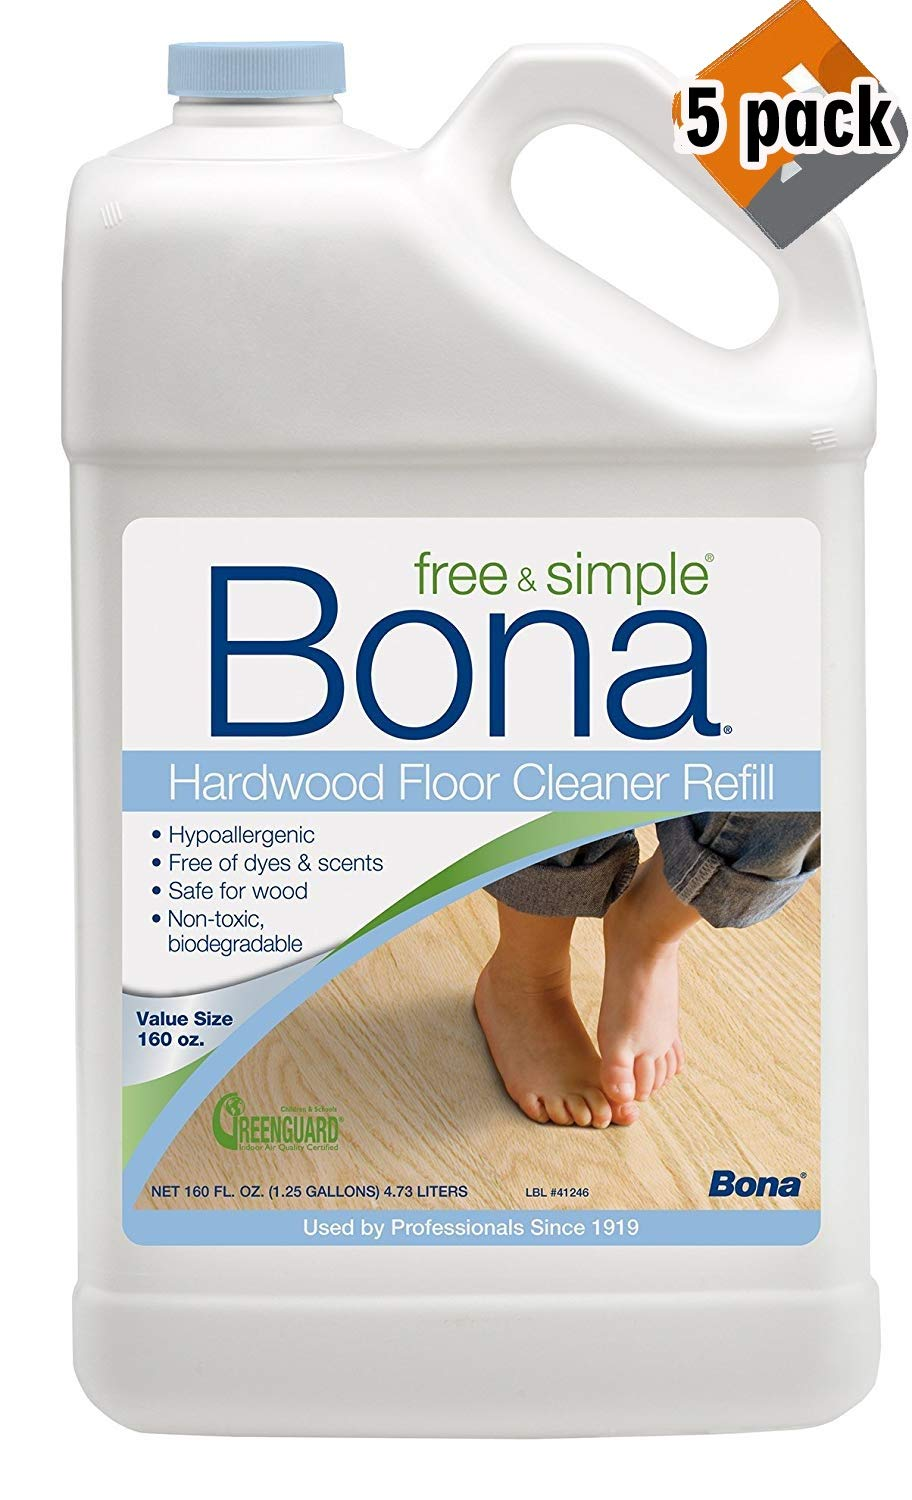 Bona 160oz Free & Simple Hardwood Floor Cleaner Refill, 5 Pack by Bona (Image #1)